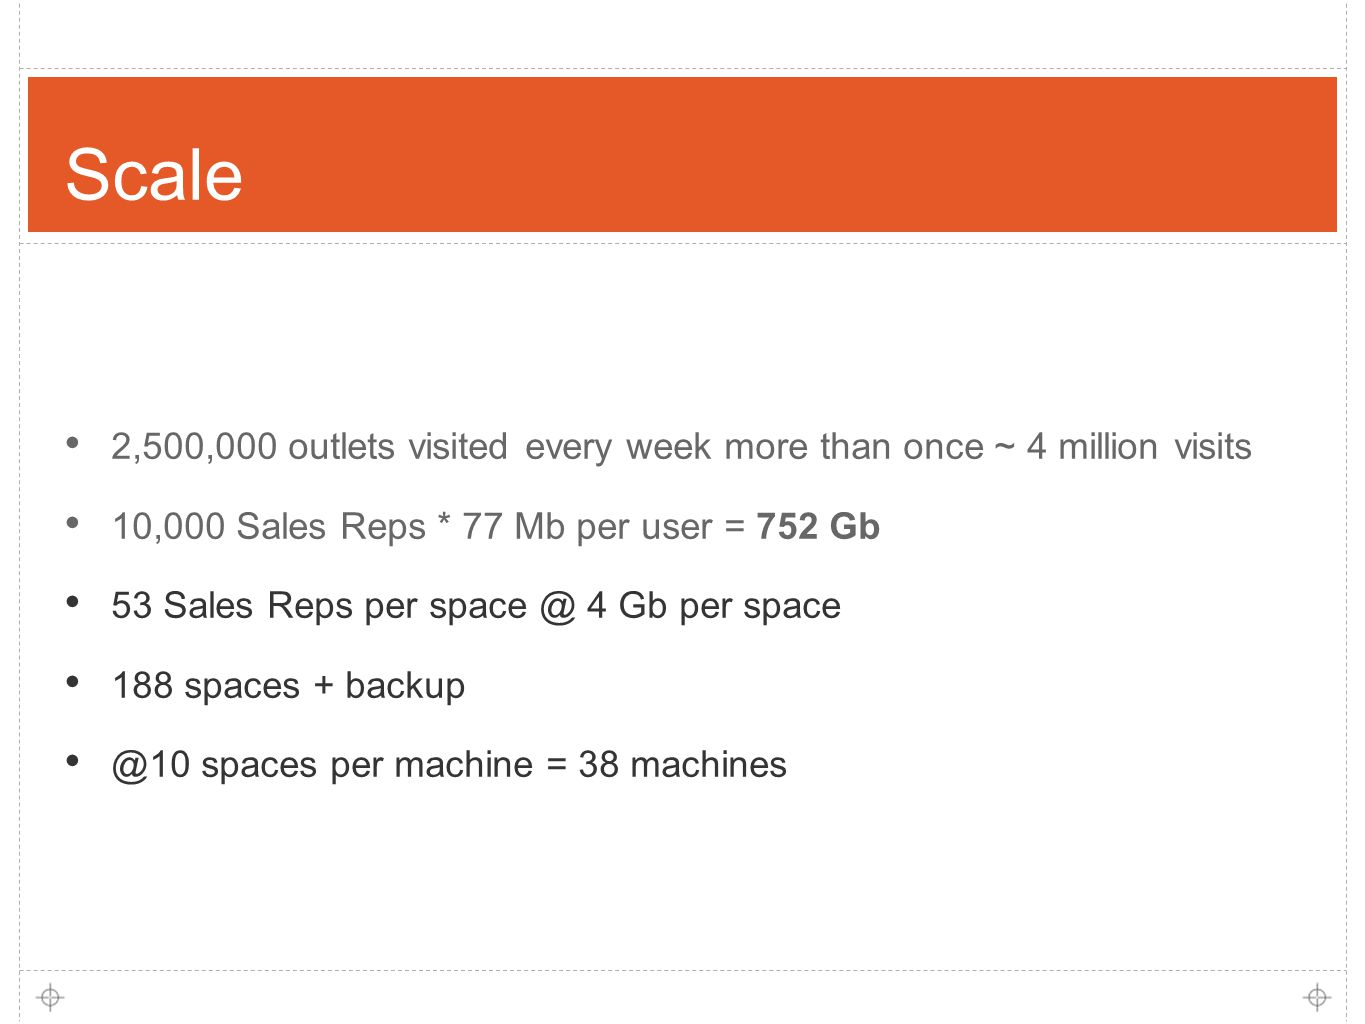 9 Scale 2,500,000 outlets visited every week more than once ~ 4 million visits 10,000 Sales Reps * 77 Mb per user = 752 Gb 53 Sales Reps per space @ 4 Gb per space 188 spaces + backup @10 spaces per machine = 38 machines